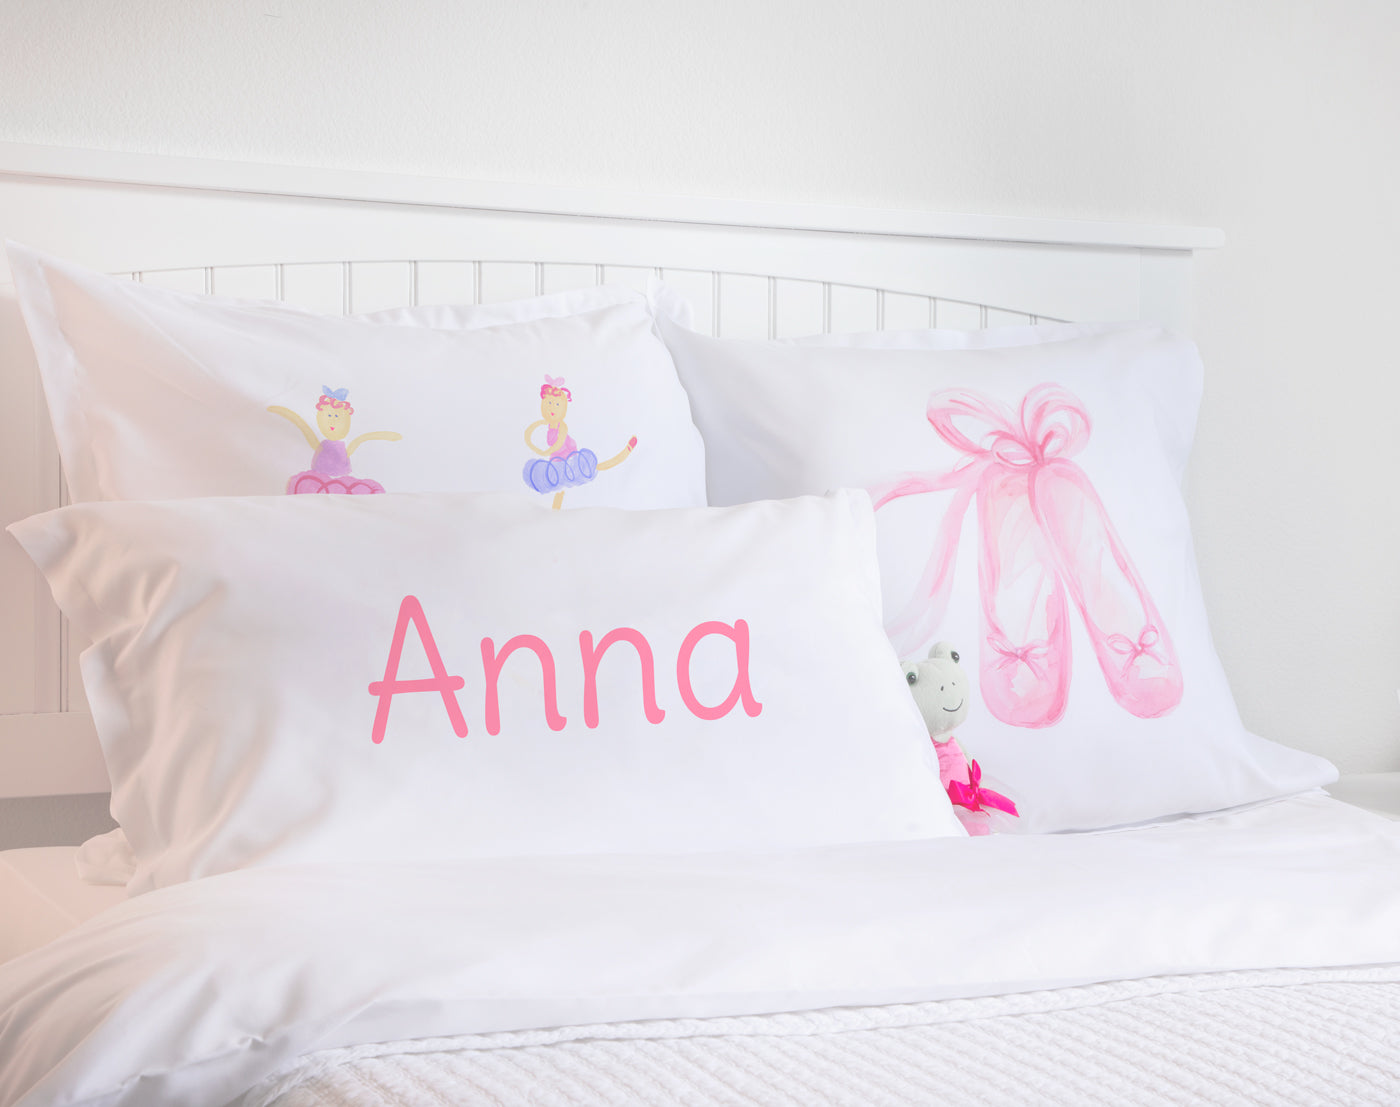 Naive - Personalized Kids Pillowcase Collection-Di Lewis